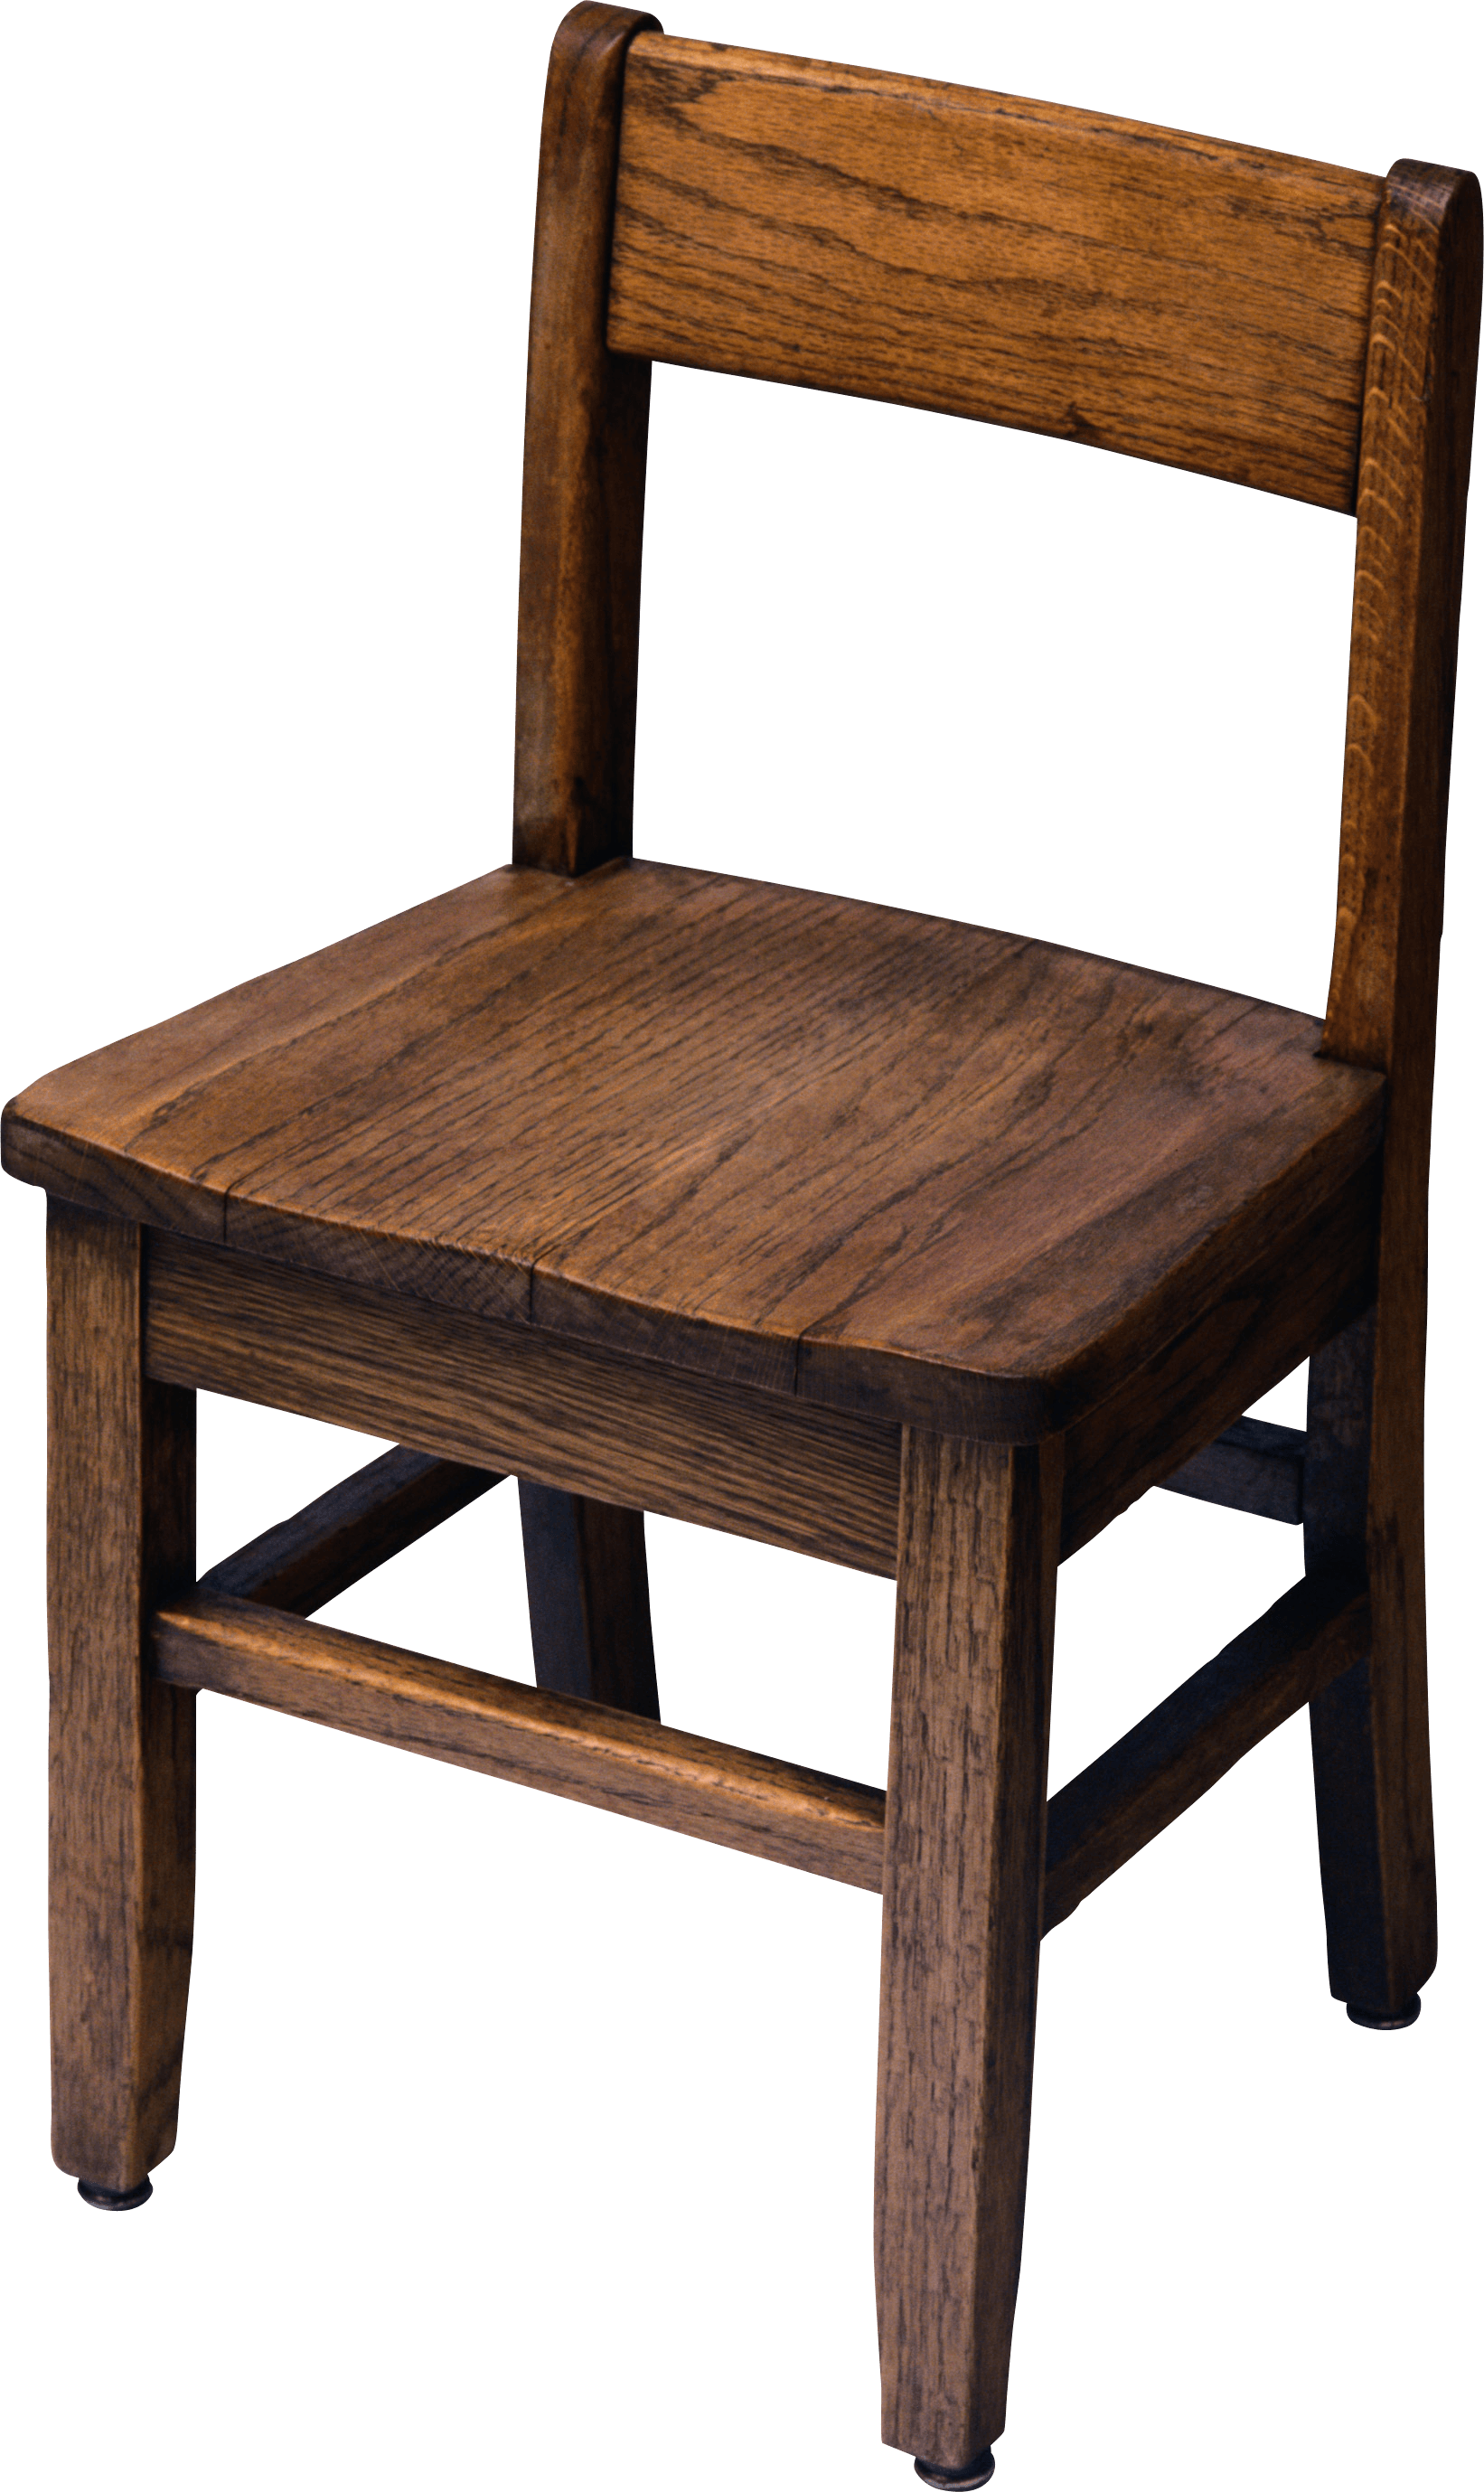 Old Wooden Chair transparent PNG.